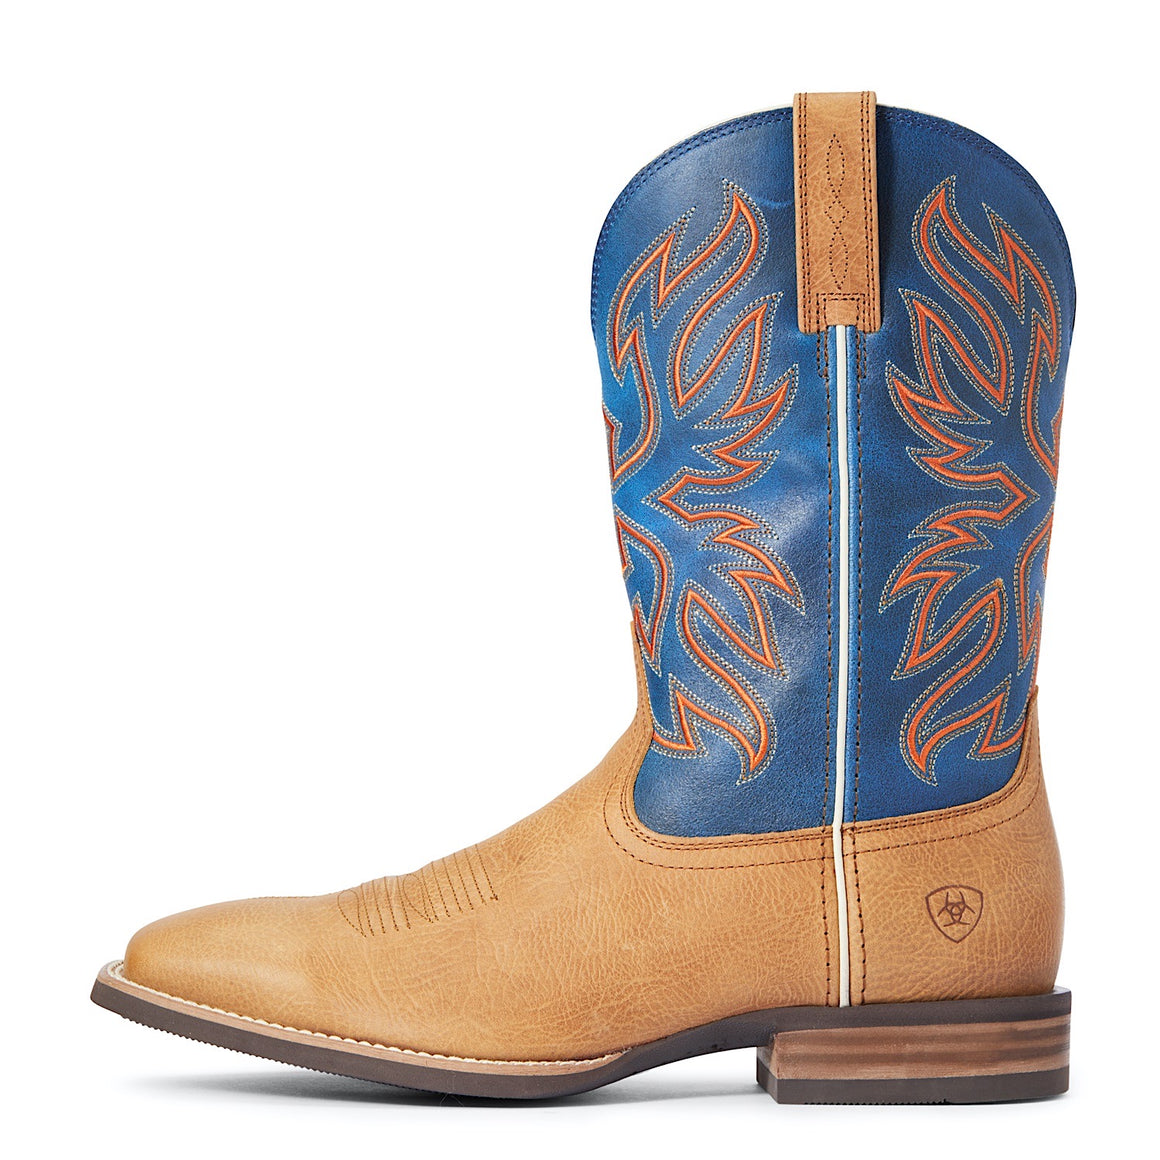 Ariat Mens Everlite Vapour Western Boot Palomino/Tractor Blue